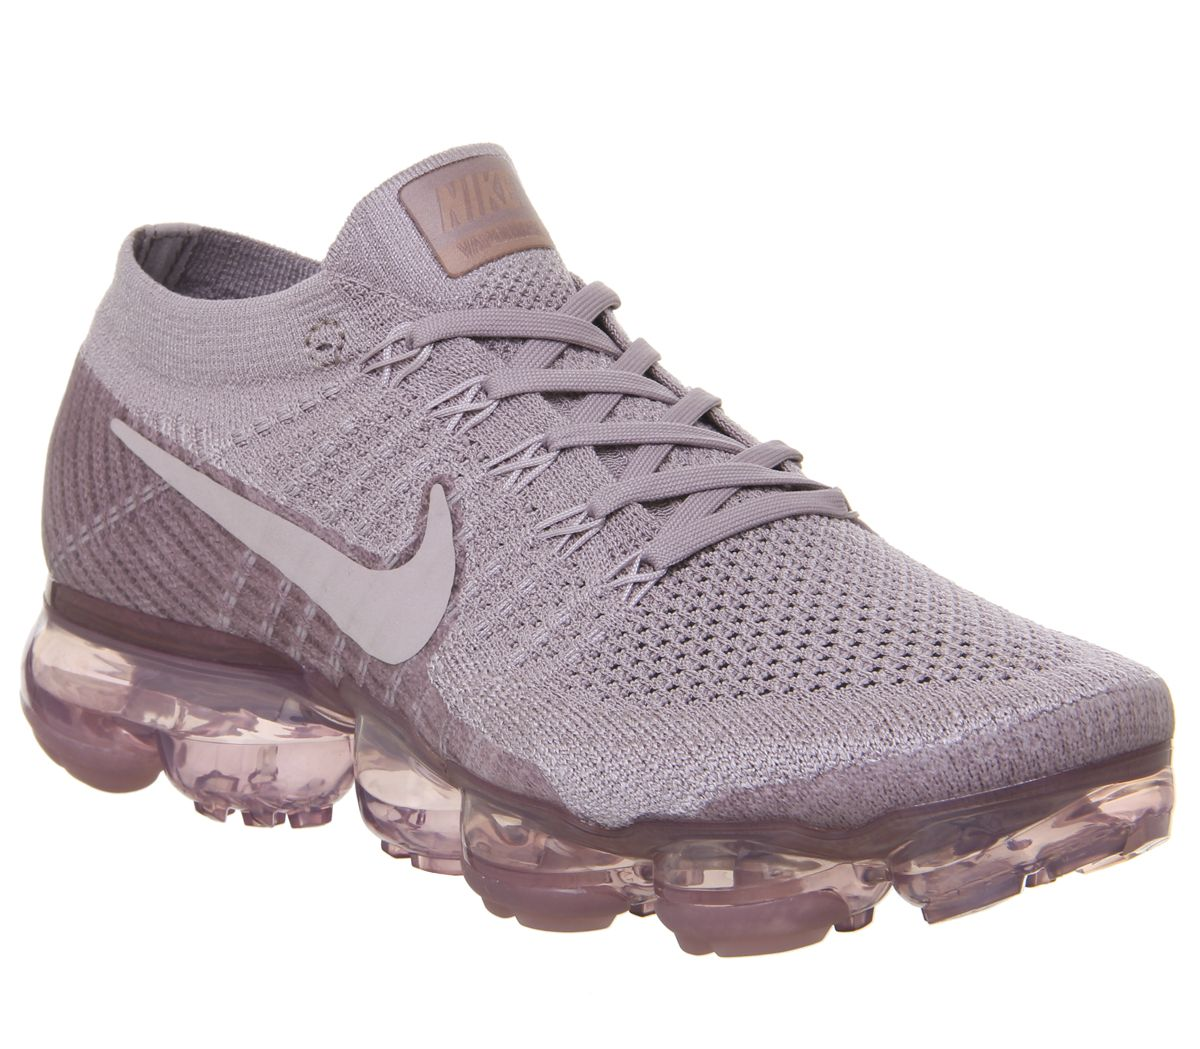 ff1cc234c8 Nike Air Vapormax Flyknit Trainers